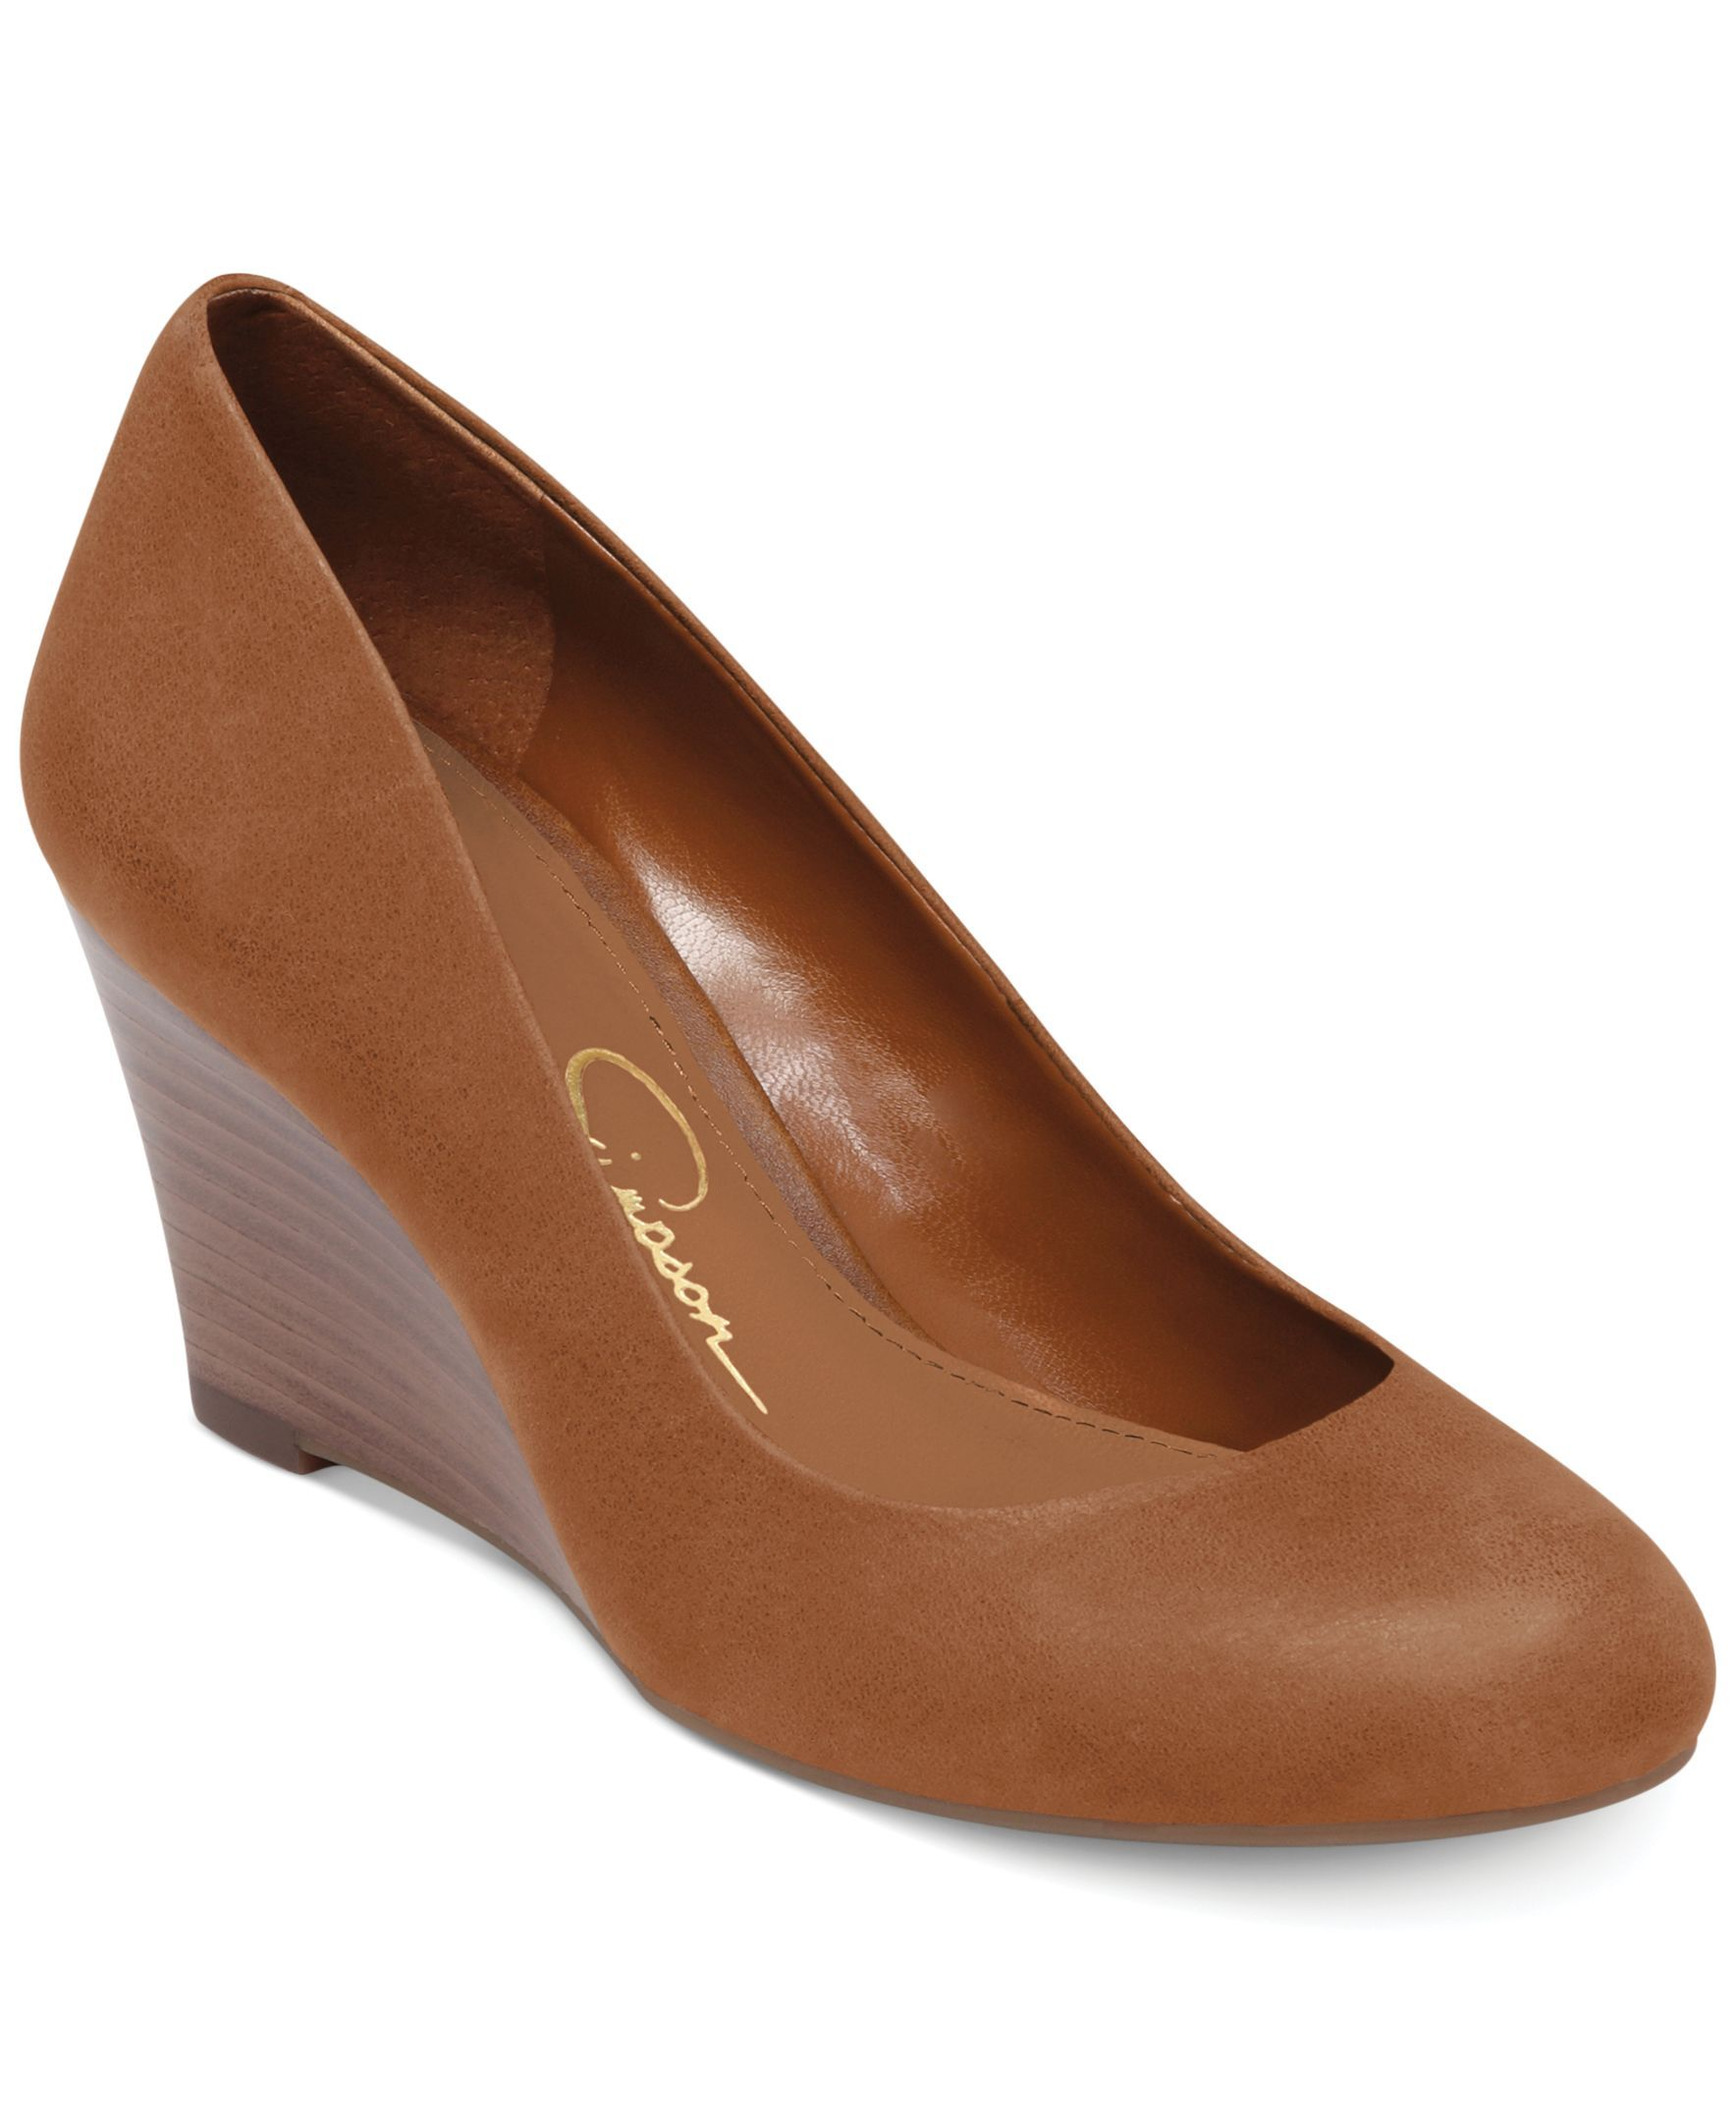 988fd61421c Jessica Simpson s Sampson wedge pumps feature a faux-stacked wrapped wedge  heel.